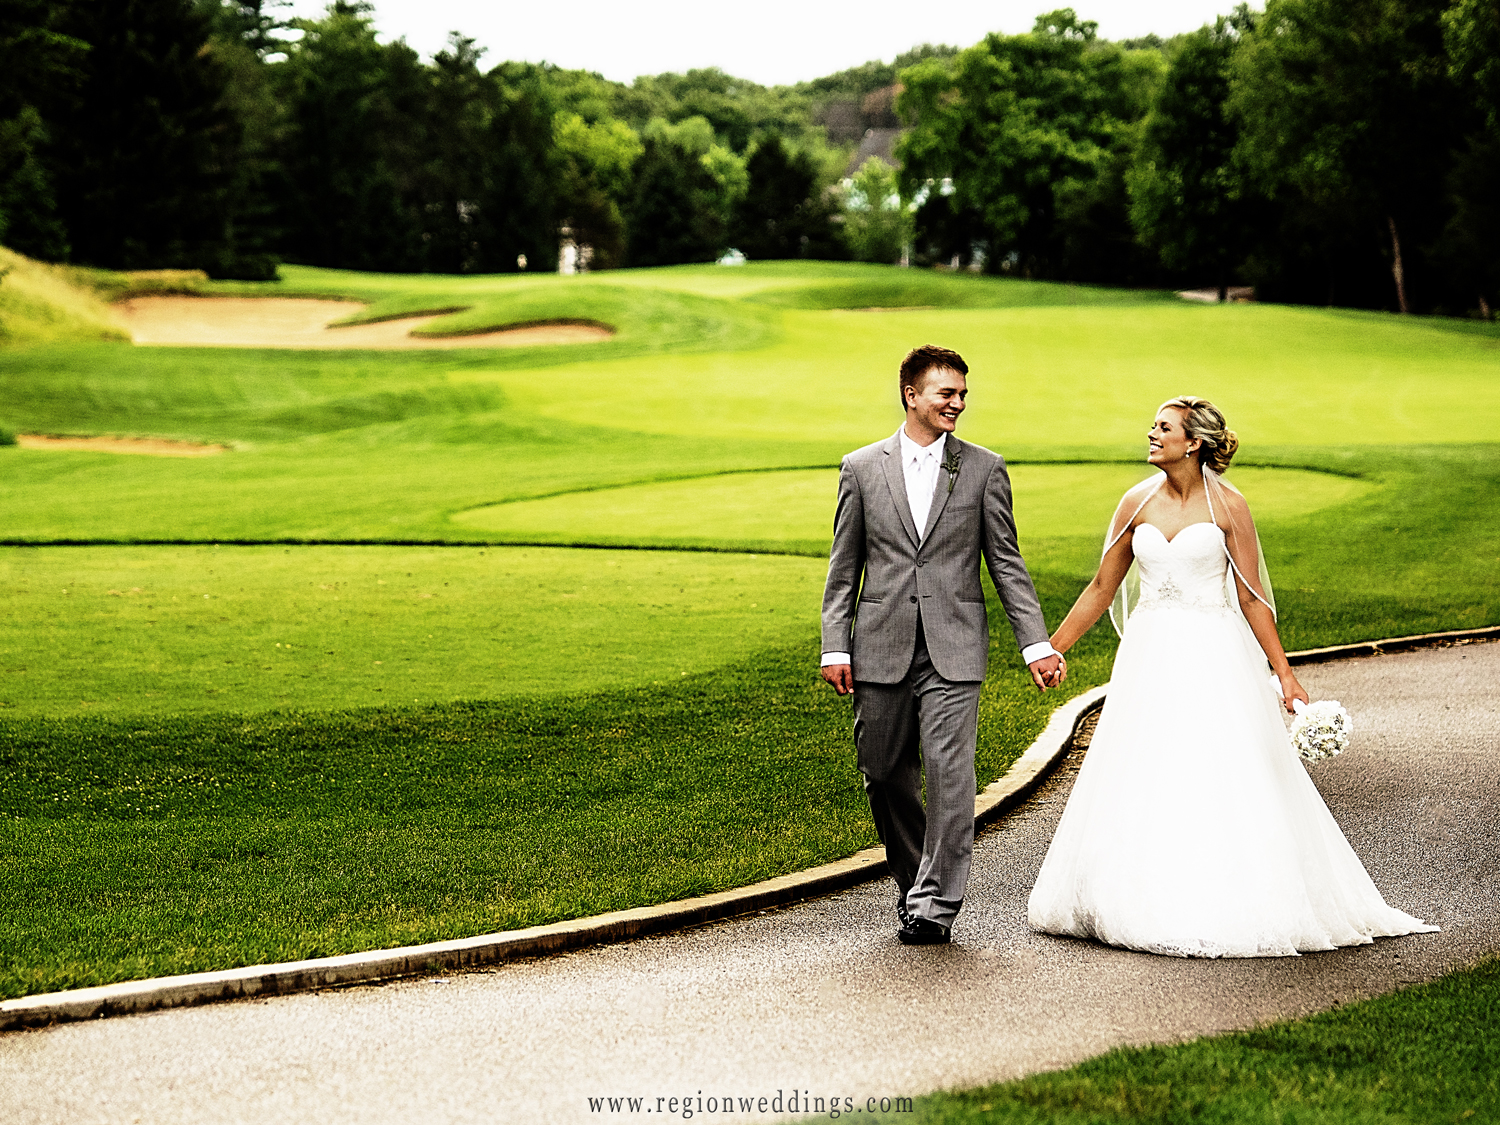 The newly married couple walk along the Sandy Pines Golf Course in Demotte, Indiana.